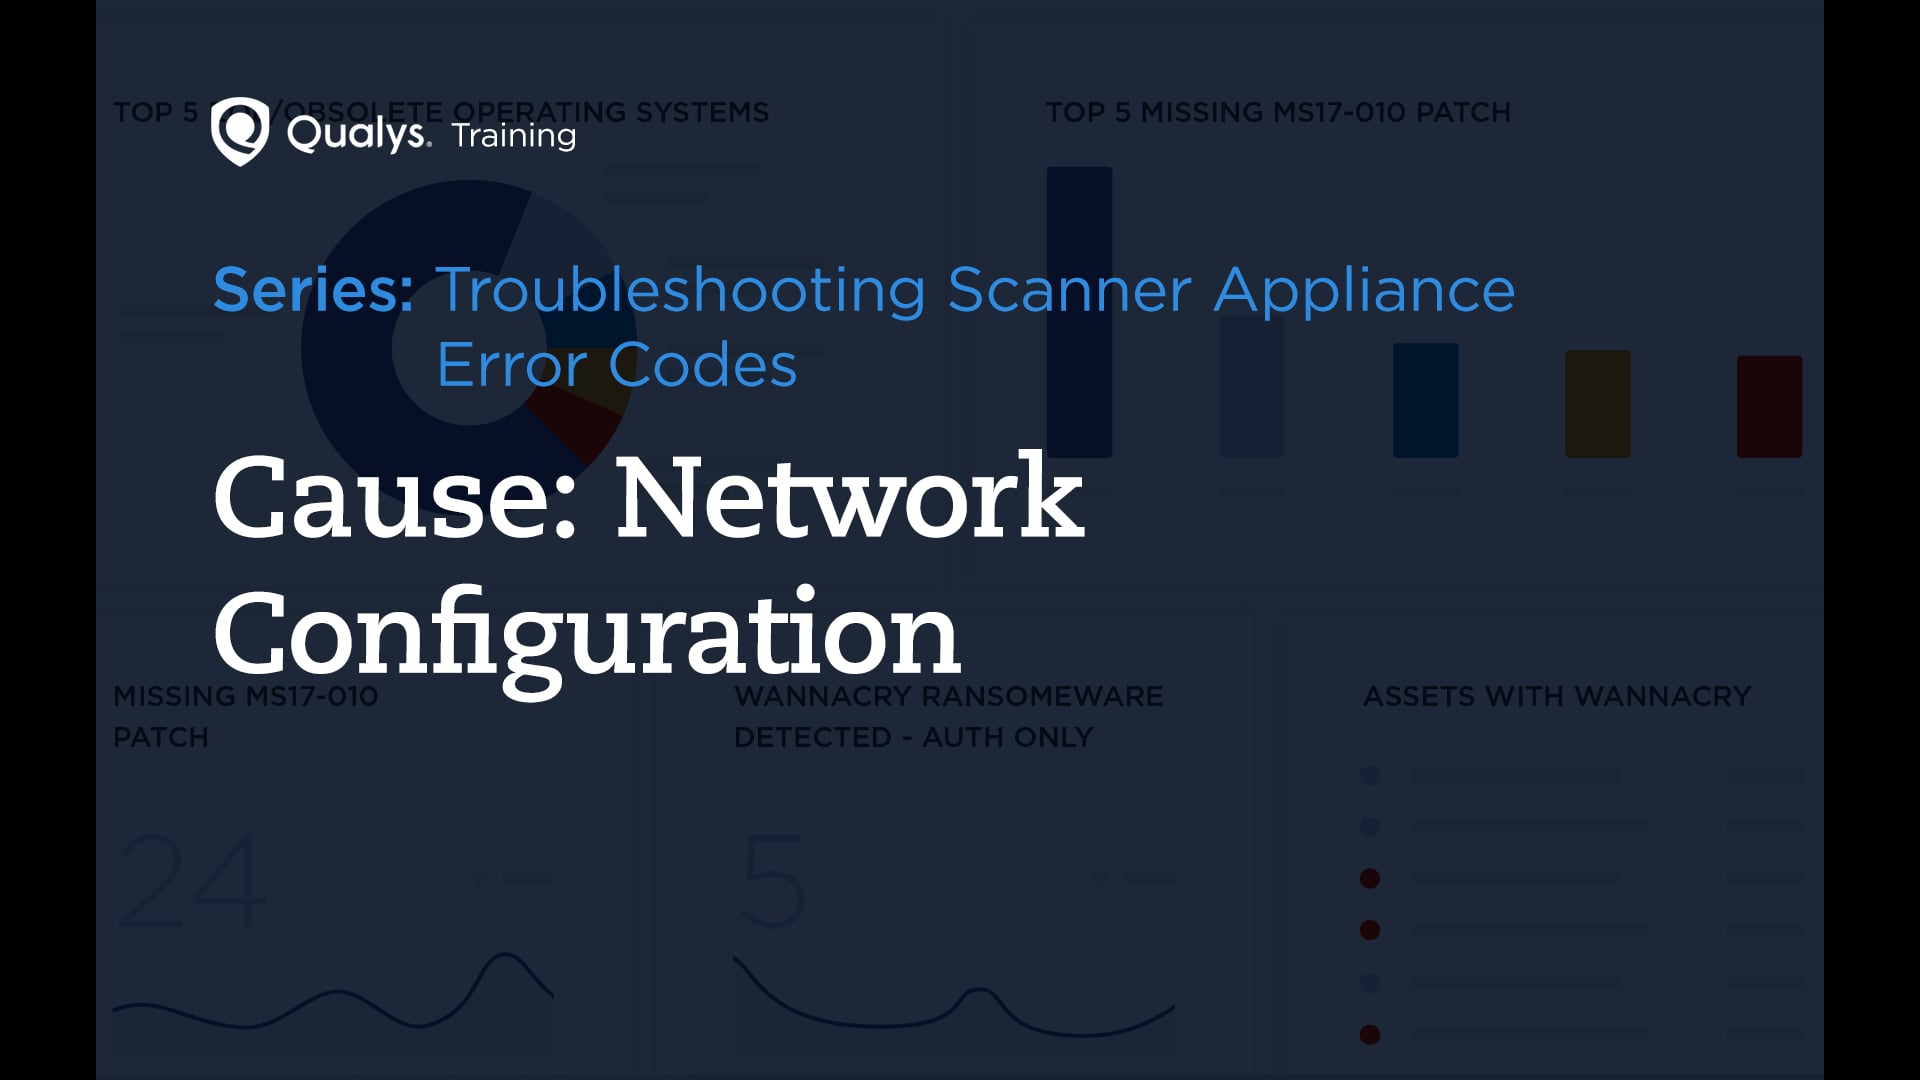 Cause: Network Configuration